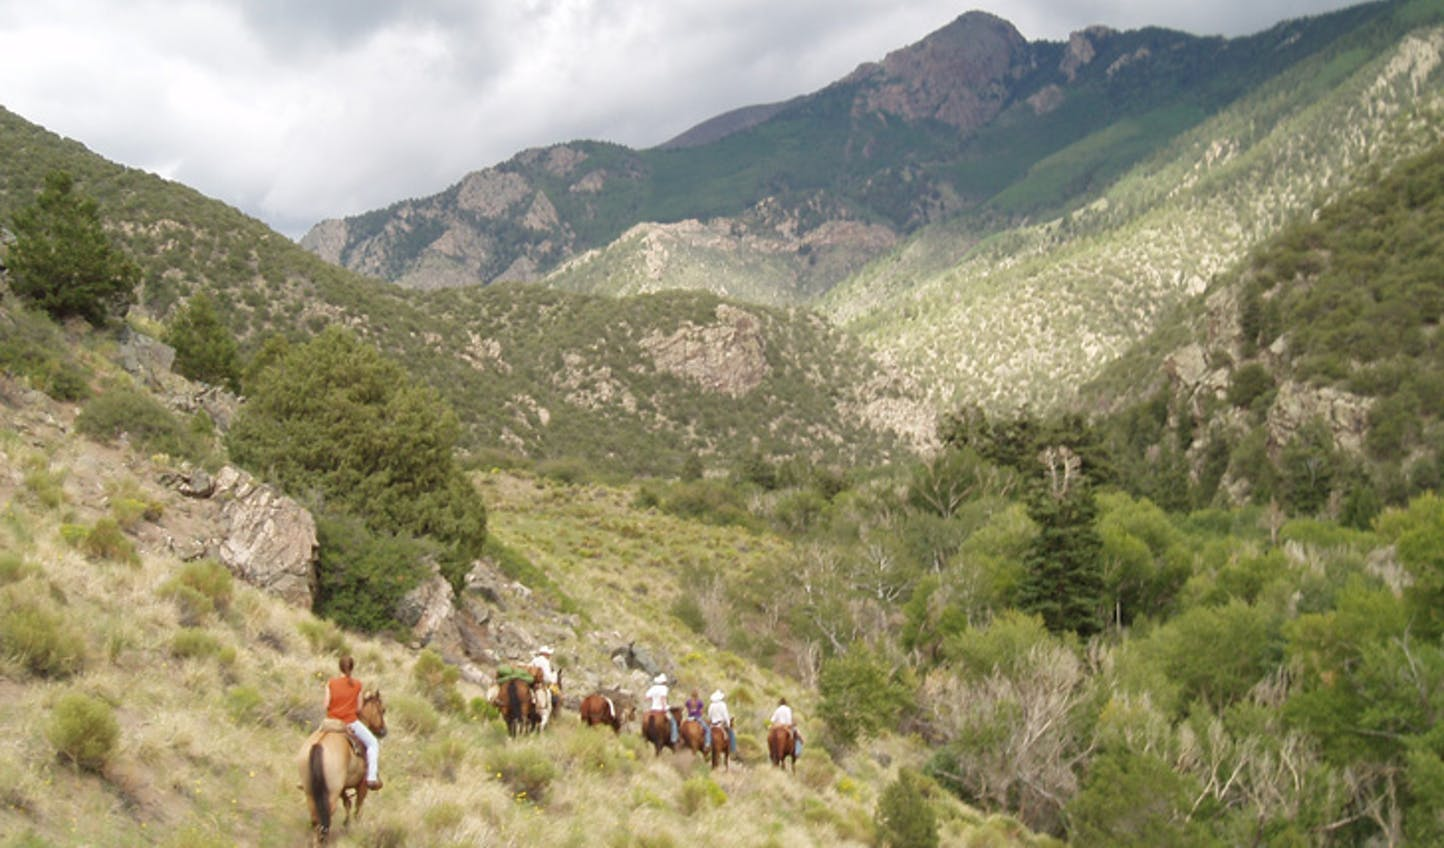 For epic wilderness trails head to Zapata Ranch